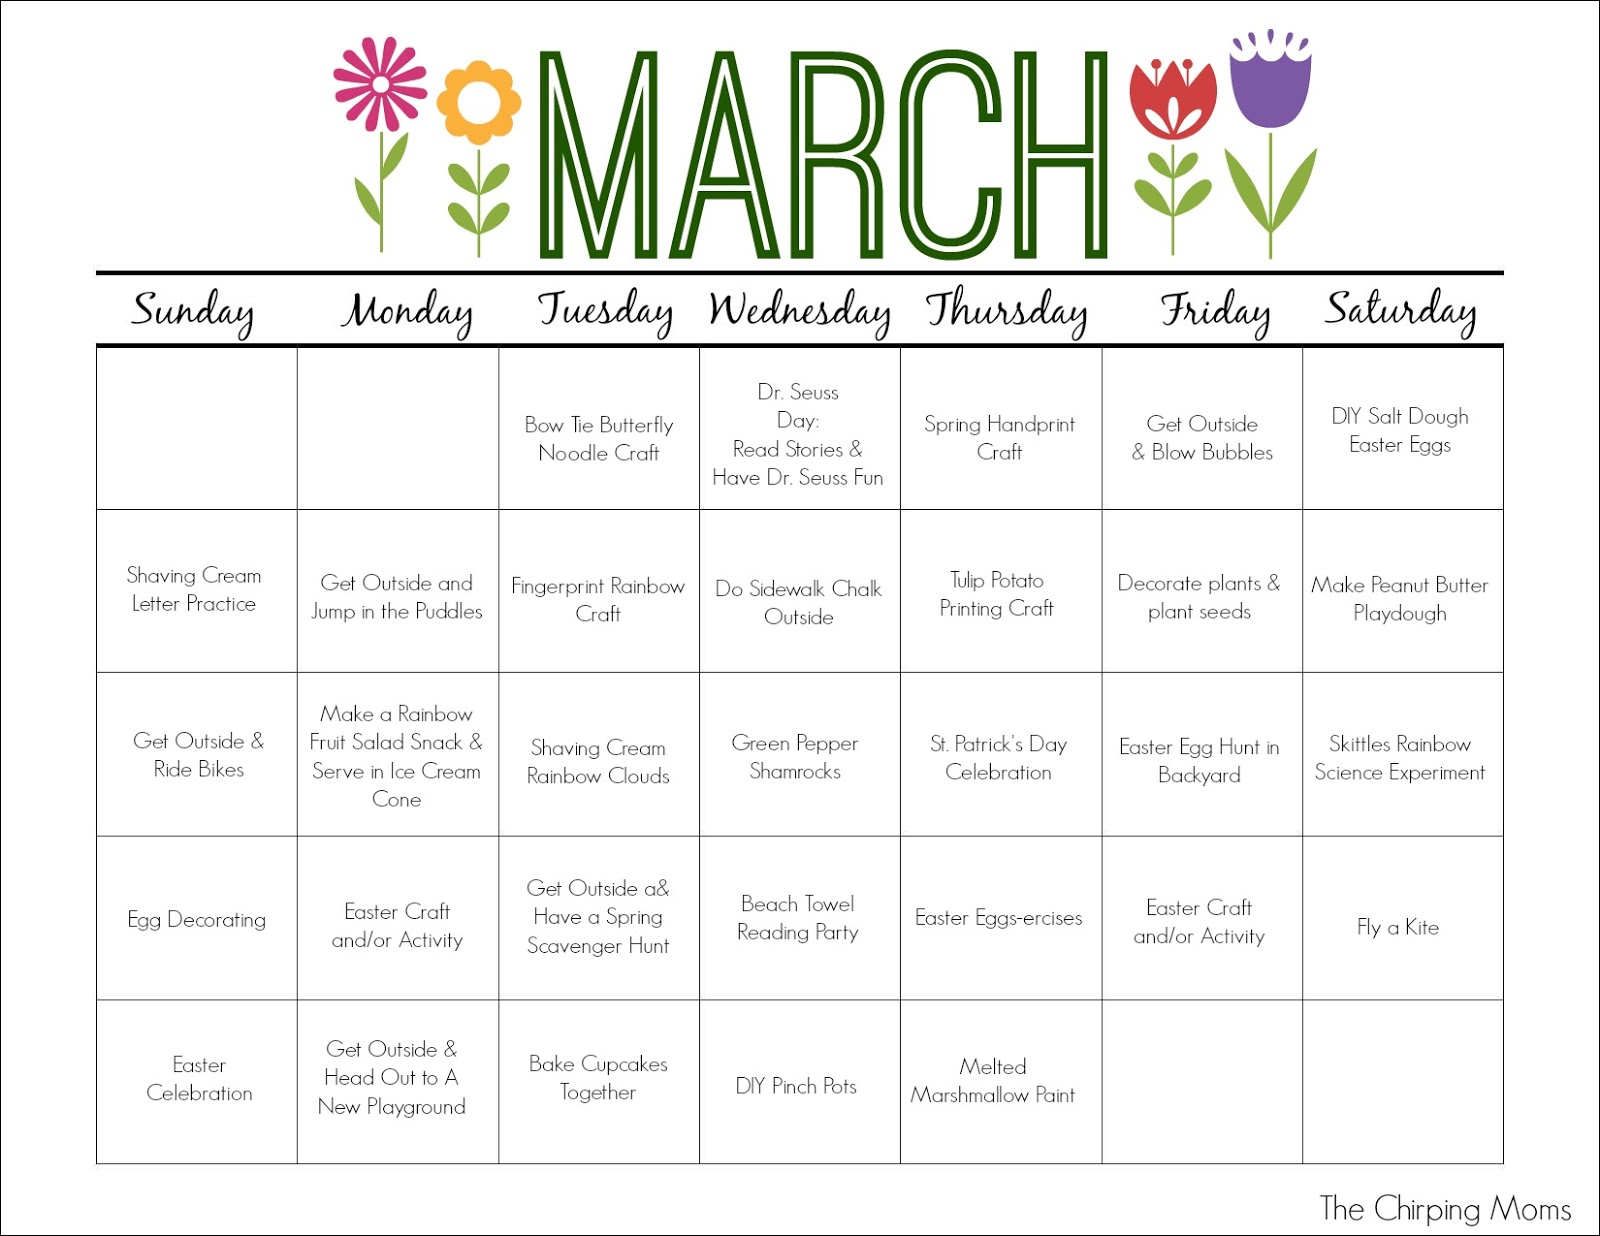 Calendar Games For Kindergarten : March printable activity calendar for kids the chirping moms